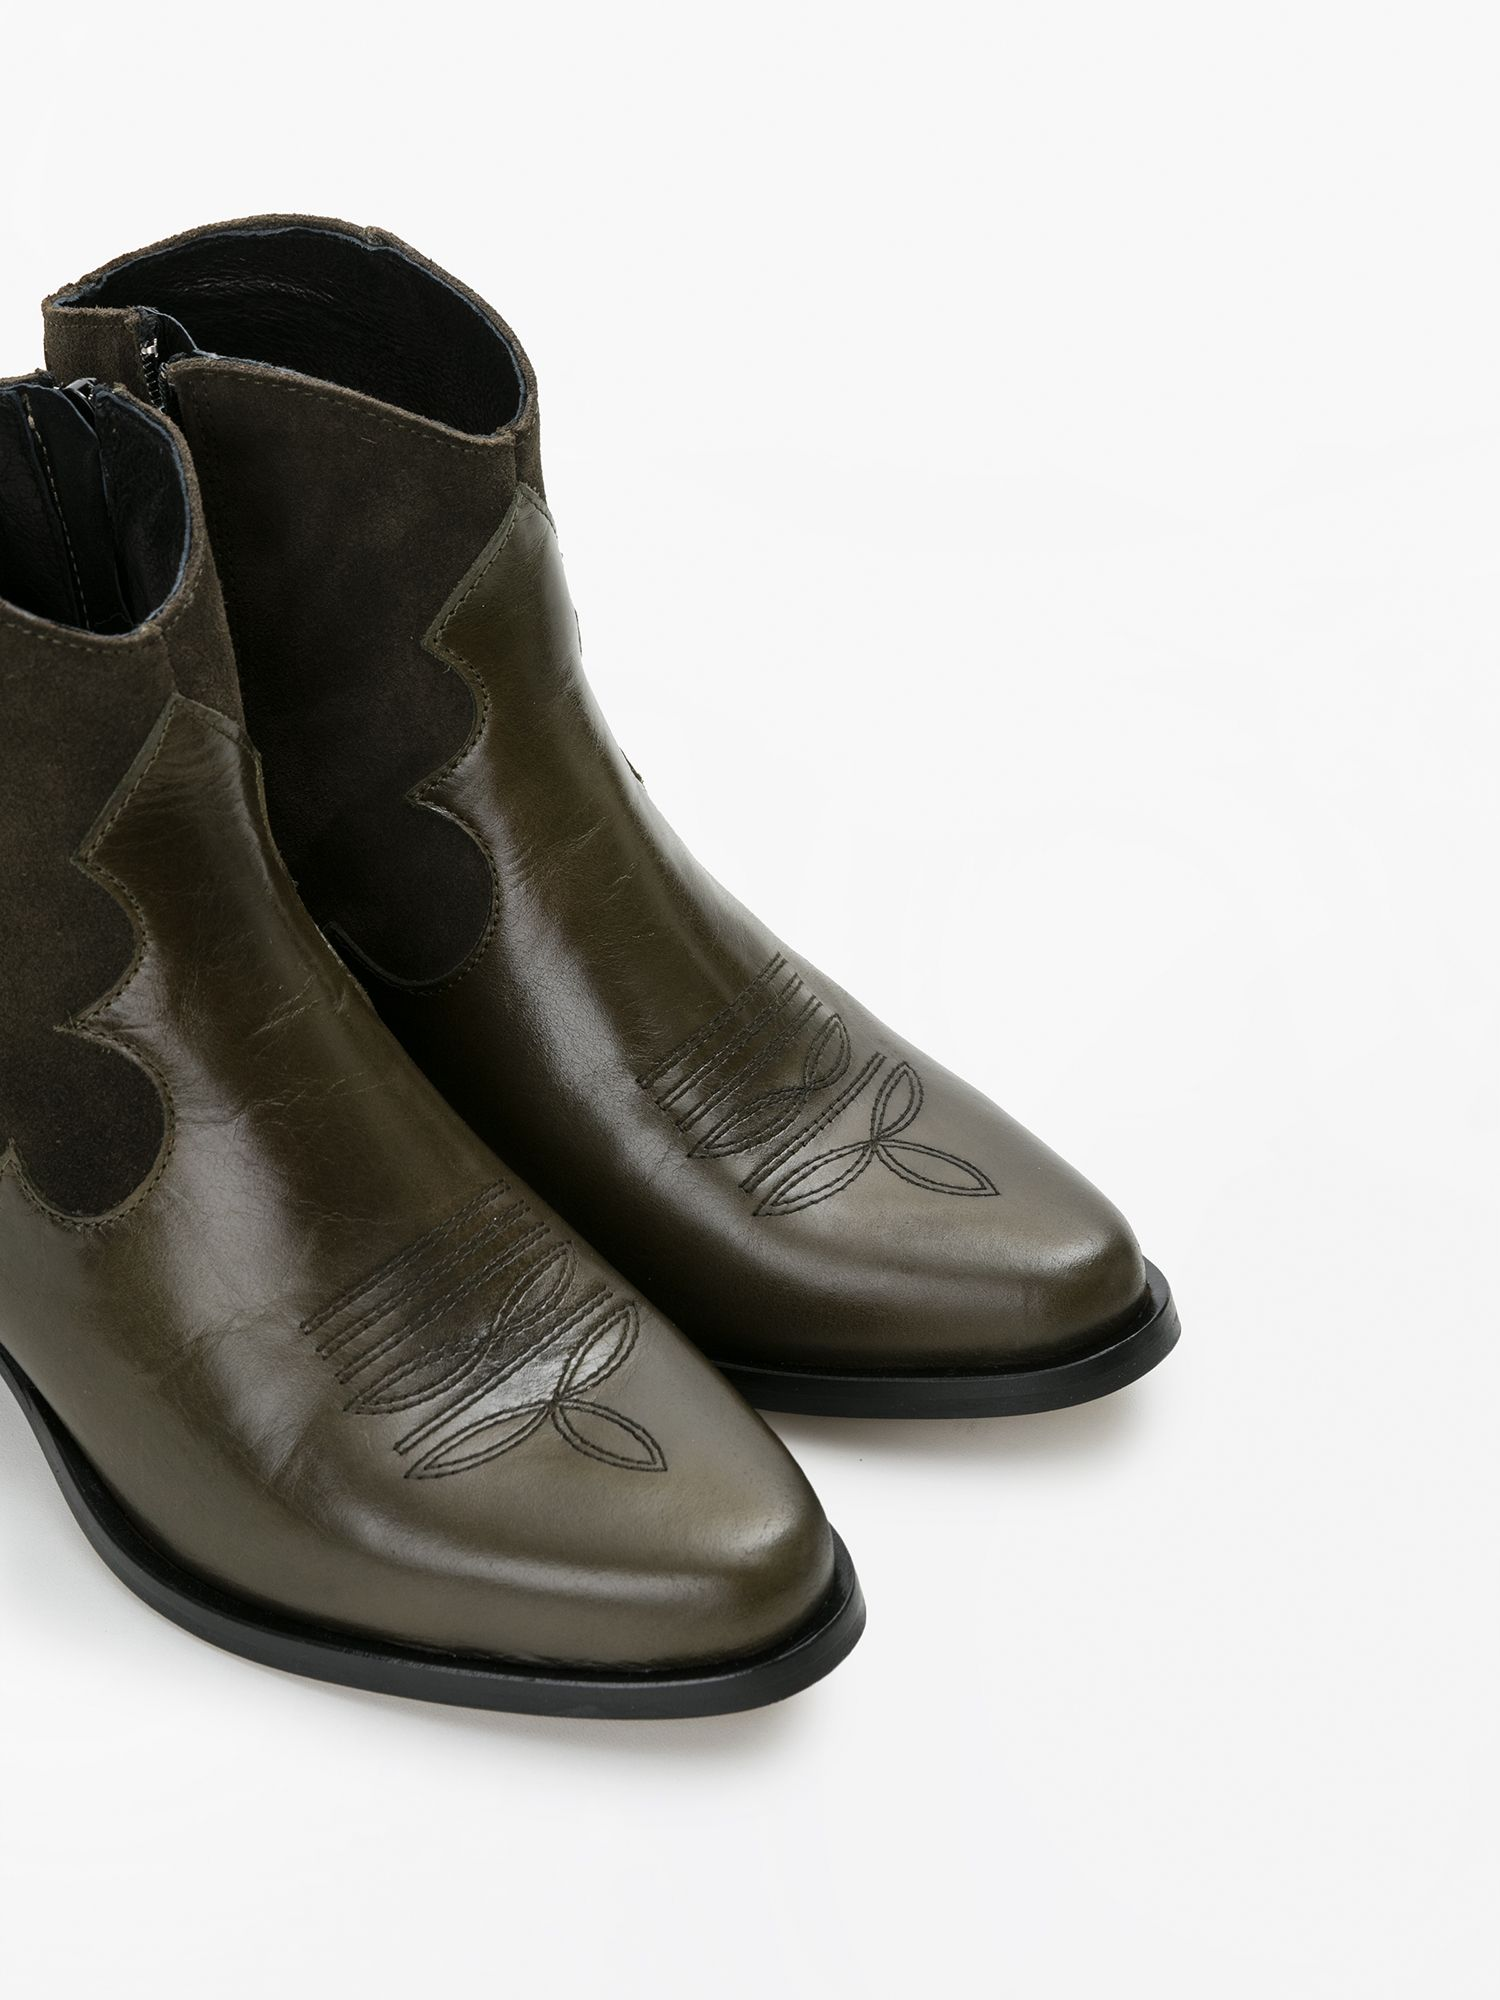 schmoove.fr POLLY WEST - LOUXOR/SUEDE - OLIVE/OLIVE